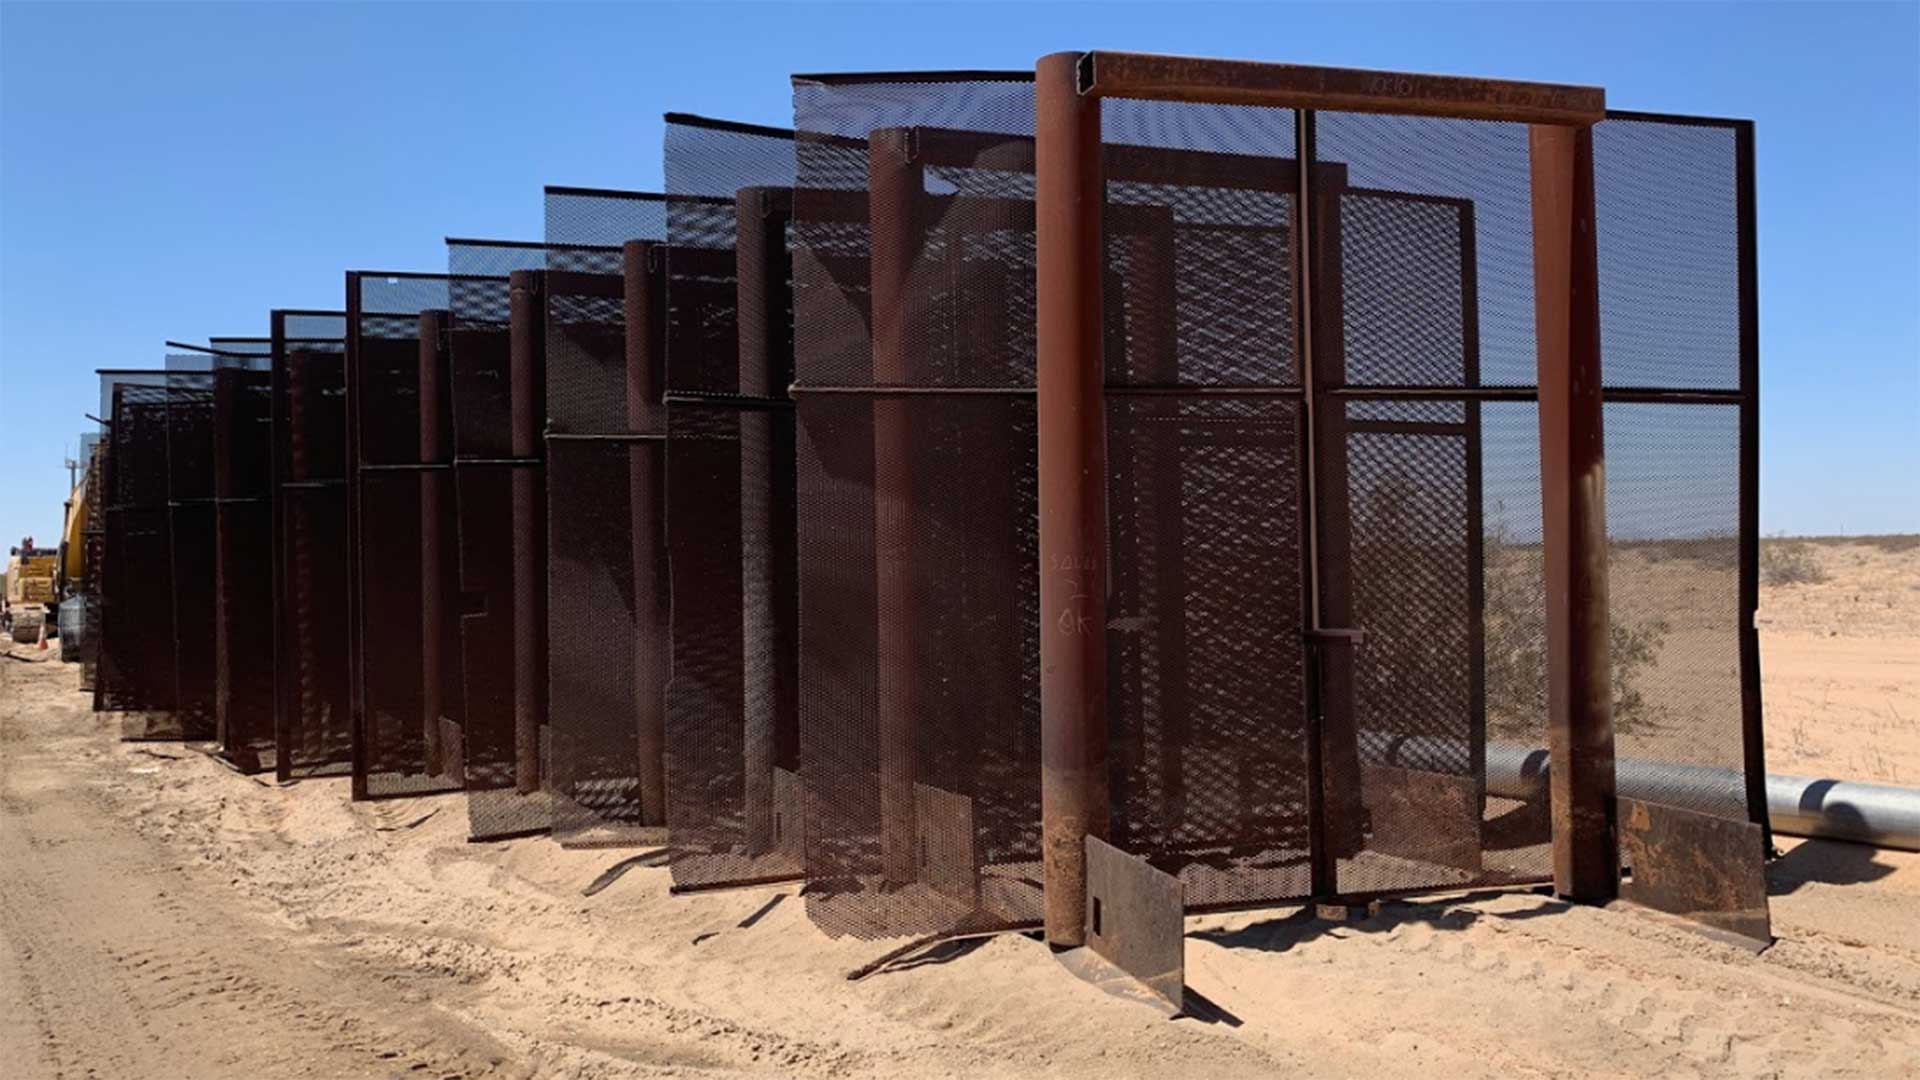 Parts of border wall staged for construction.